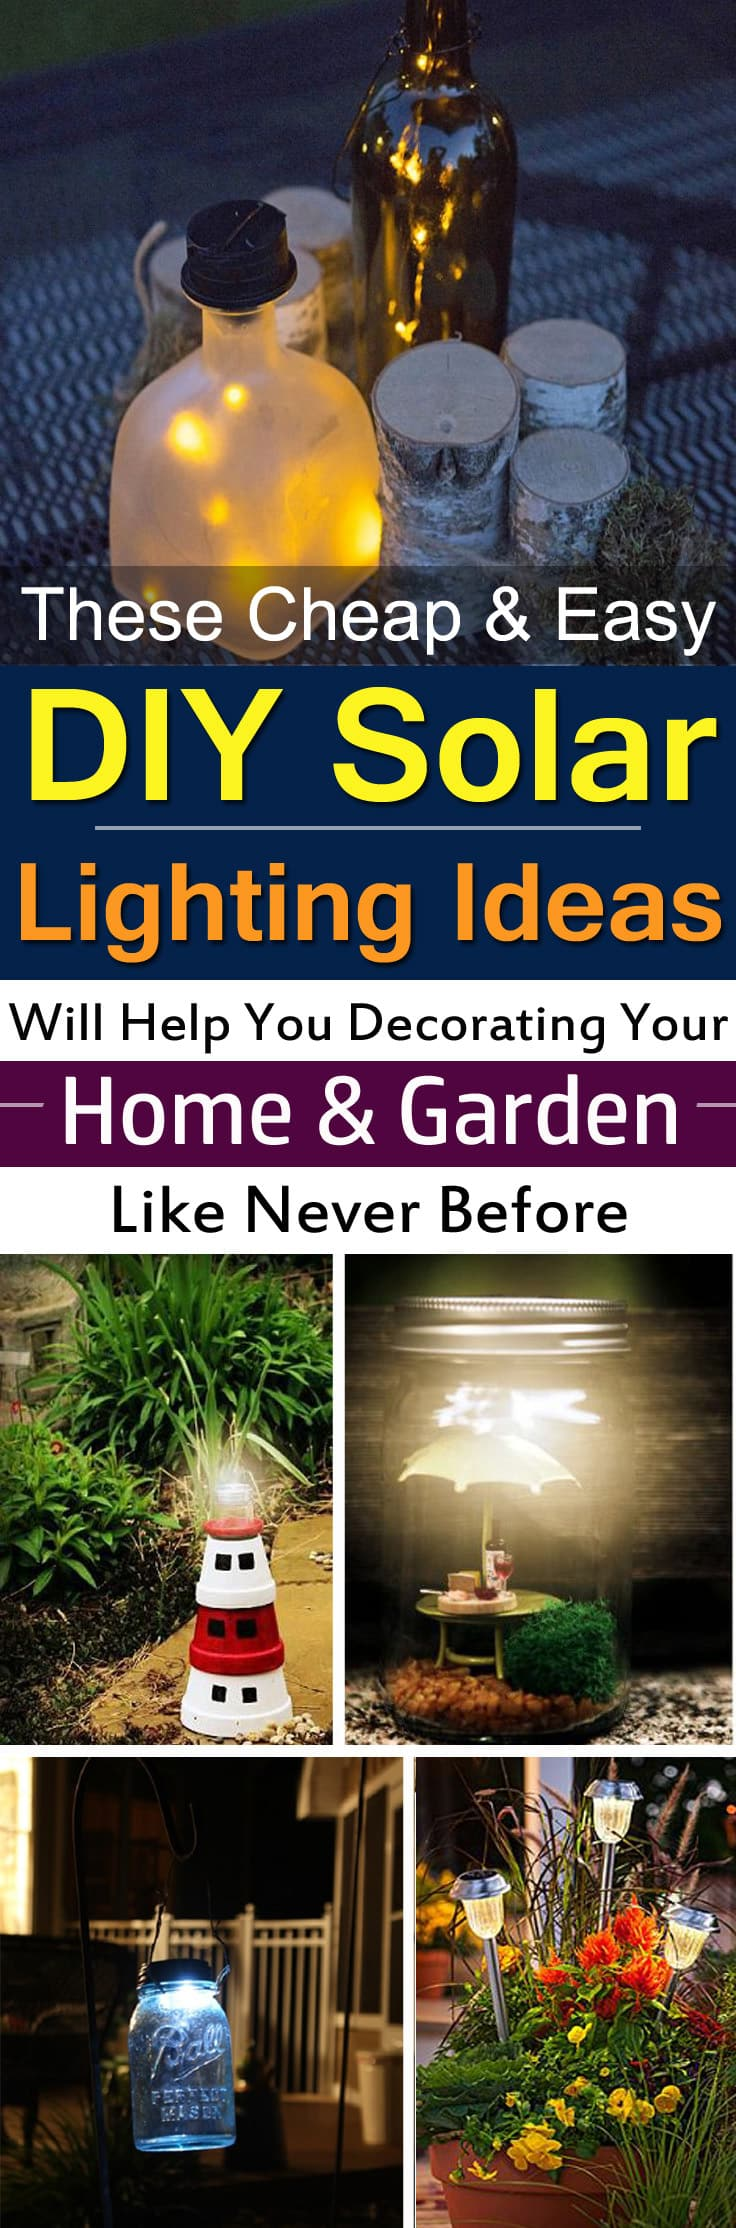 These Are Their Stories More Features Mariska Hargitay: 28 Cheap & Easy DIY Solar Light Projects For Home & Garden